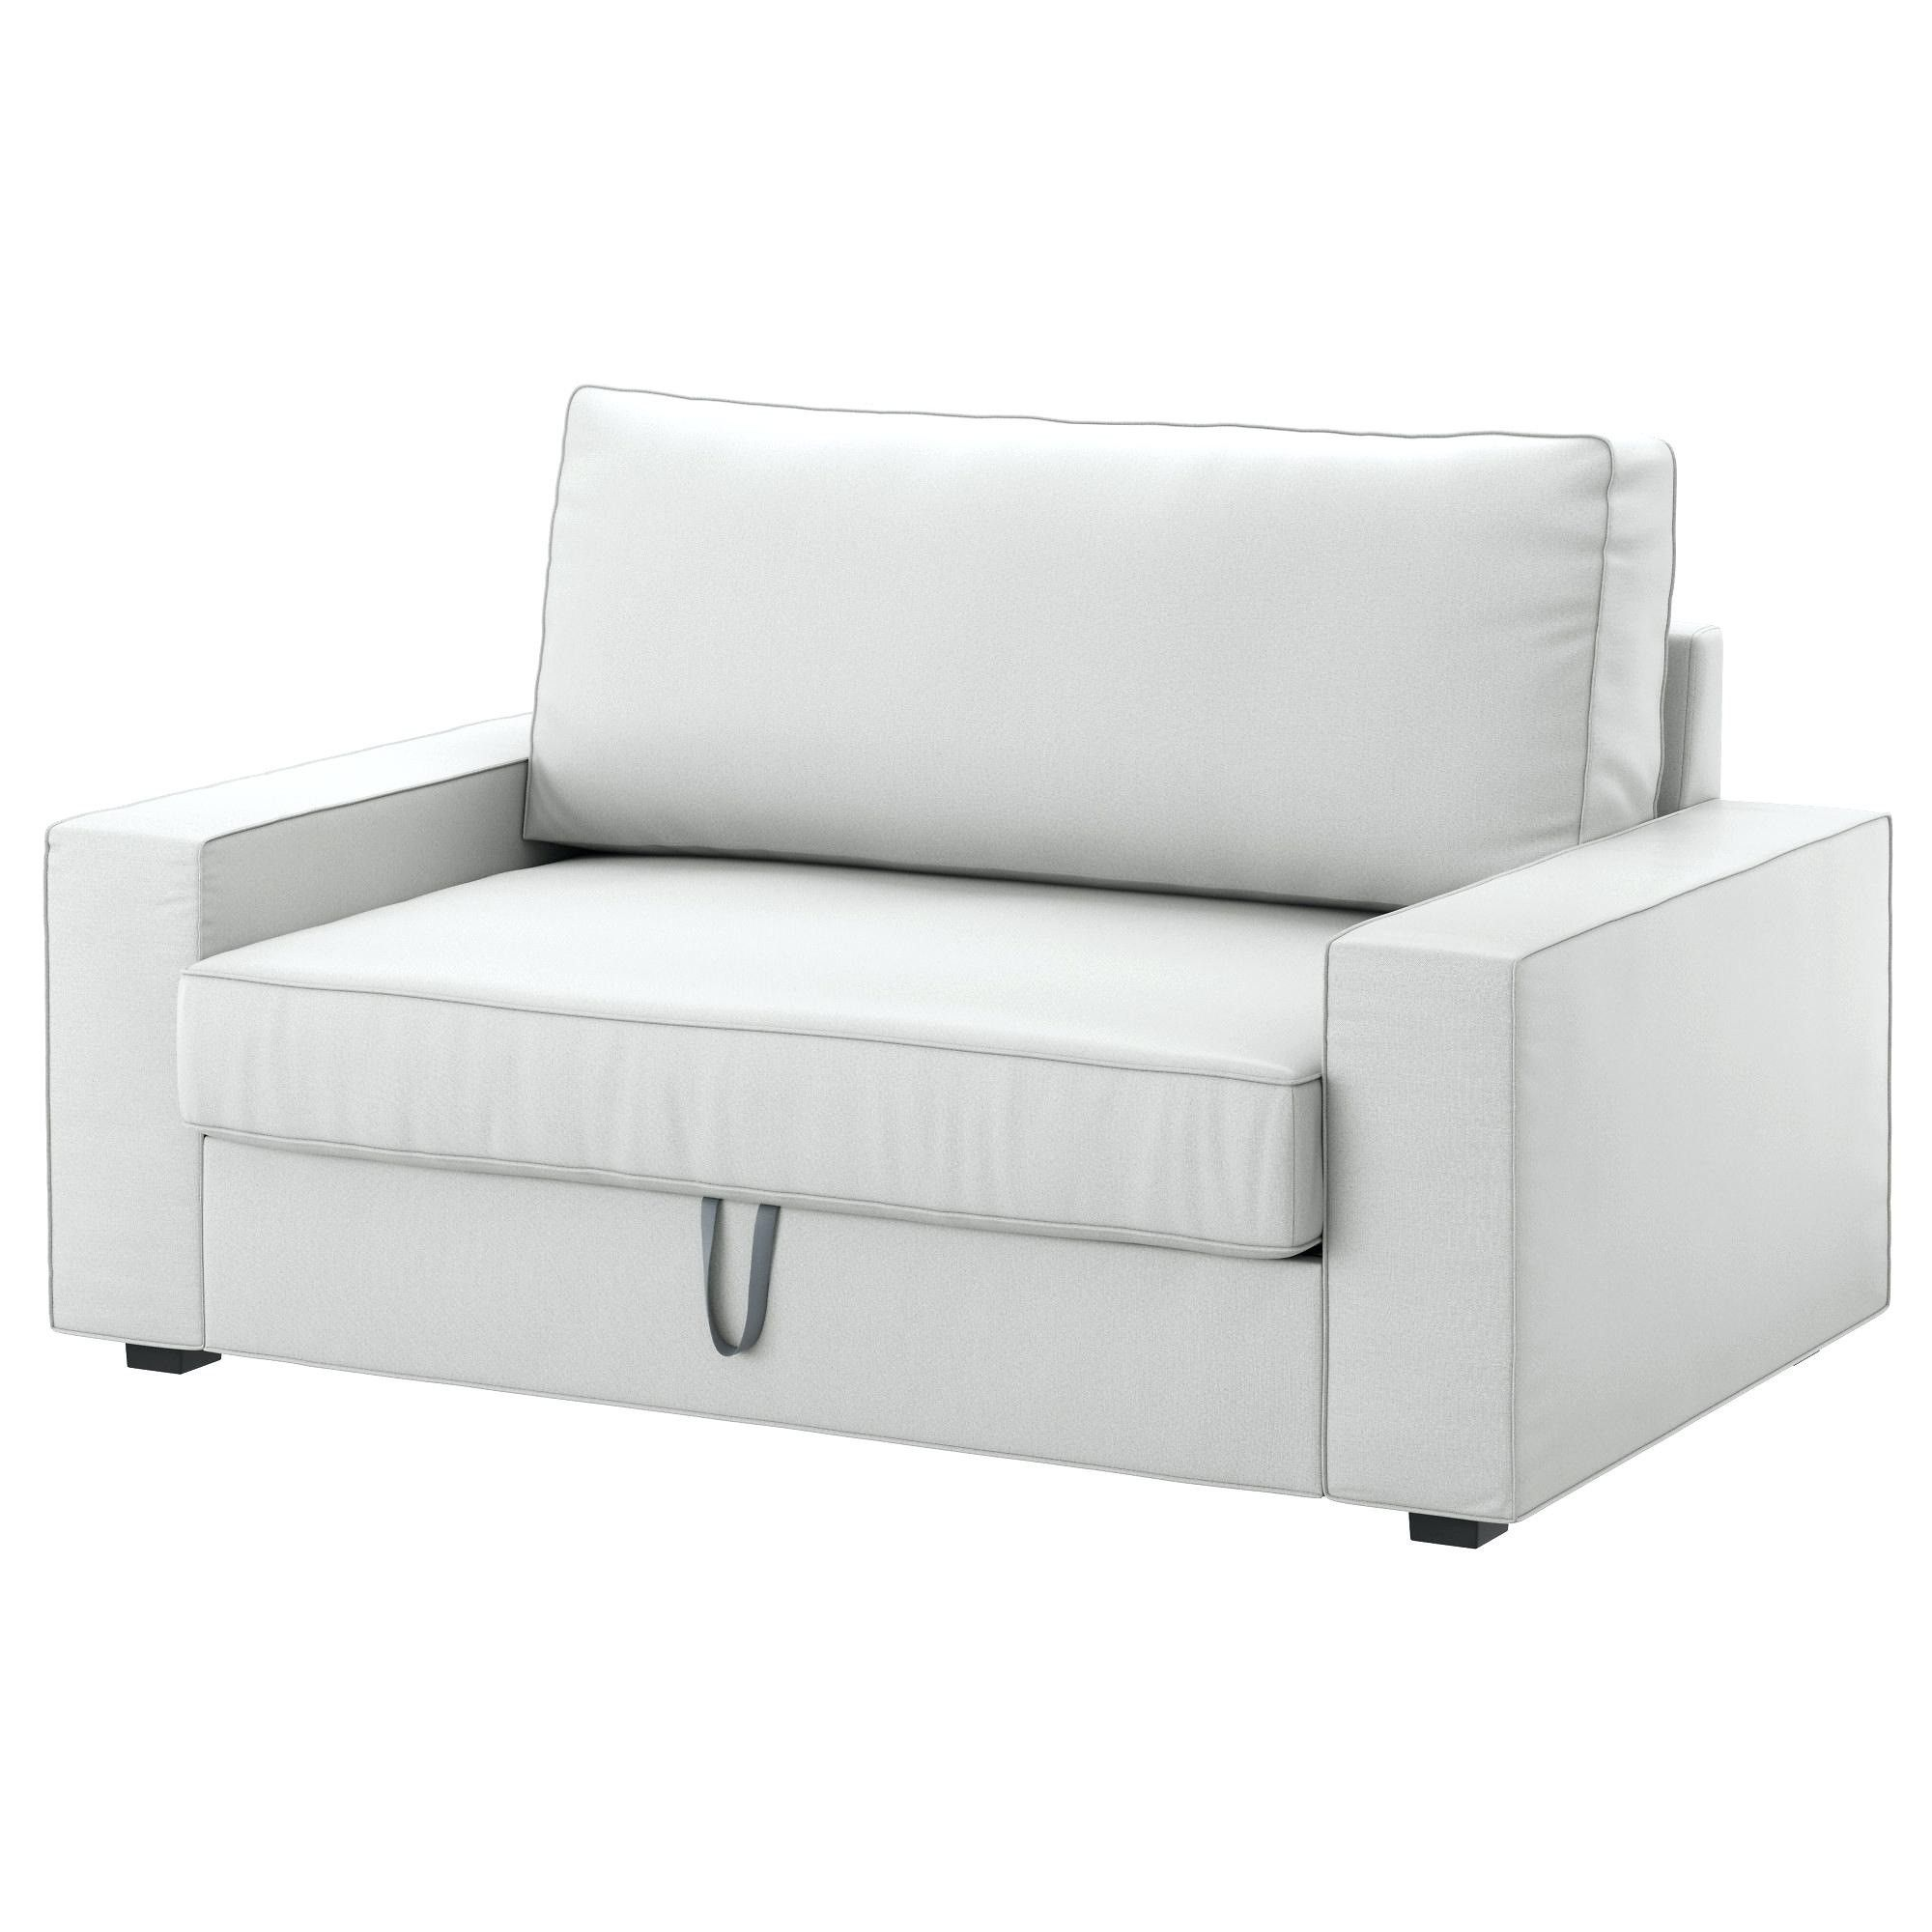 Lovely Housse Kivik Convertible Ikea Bed Sofa Cama Chair Bed Ikea